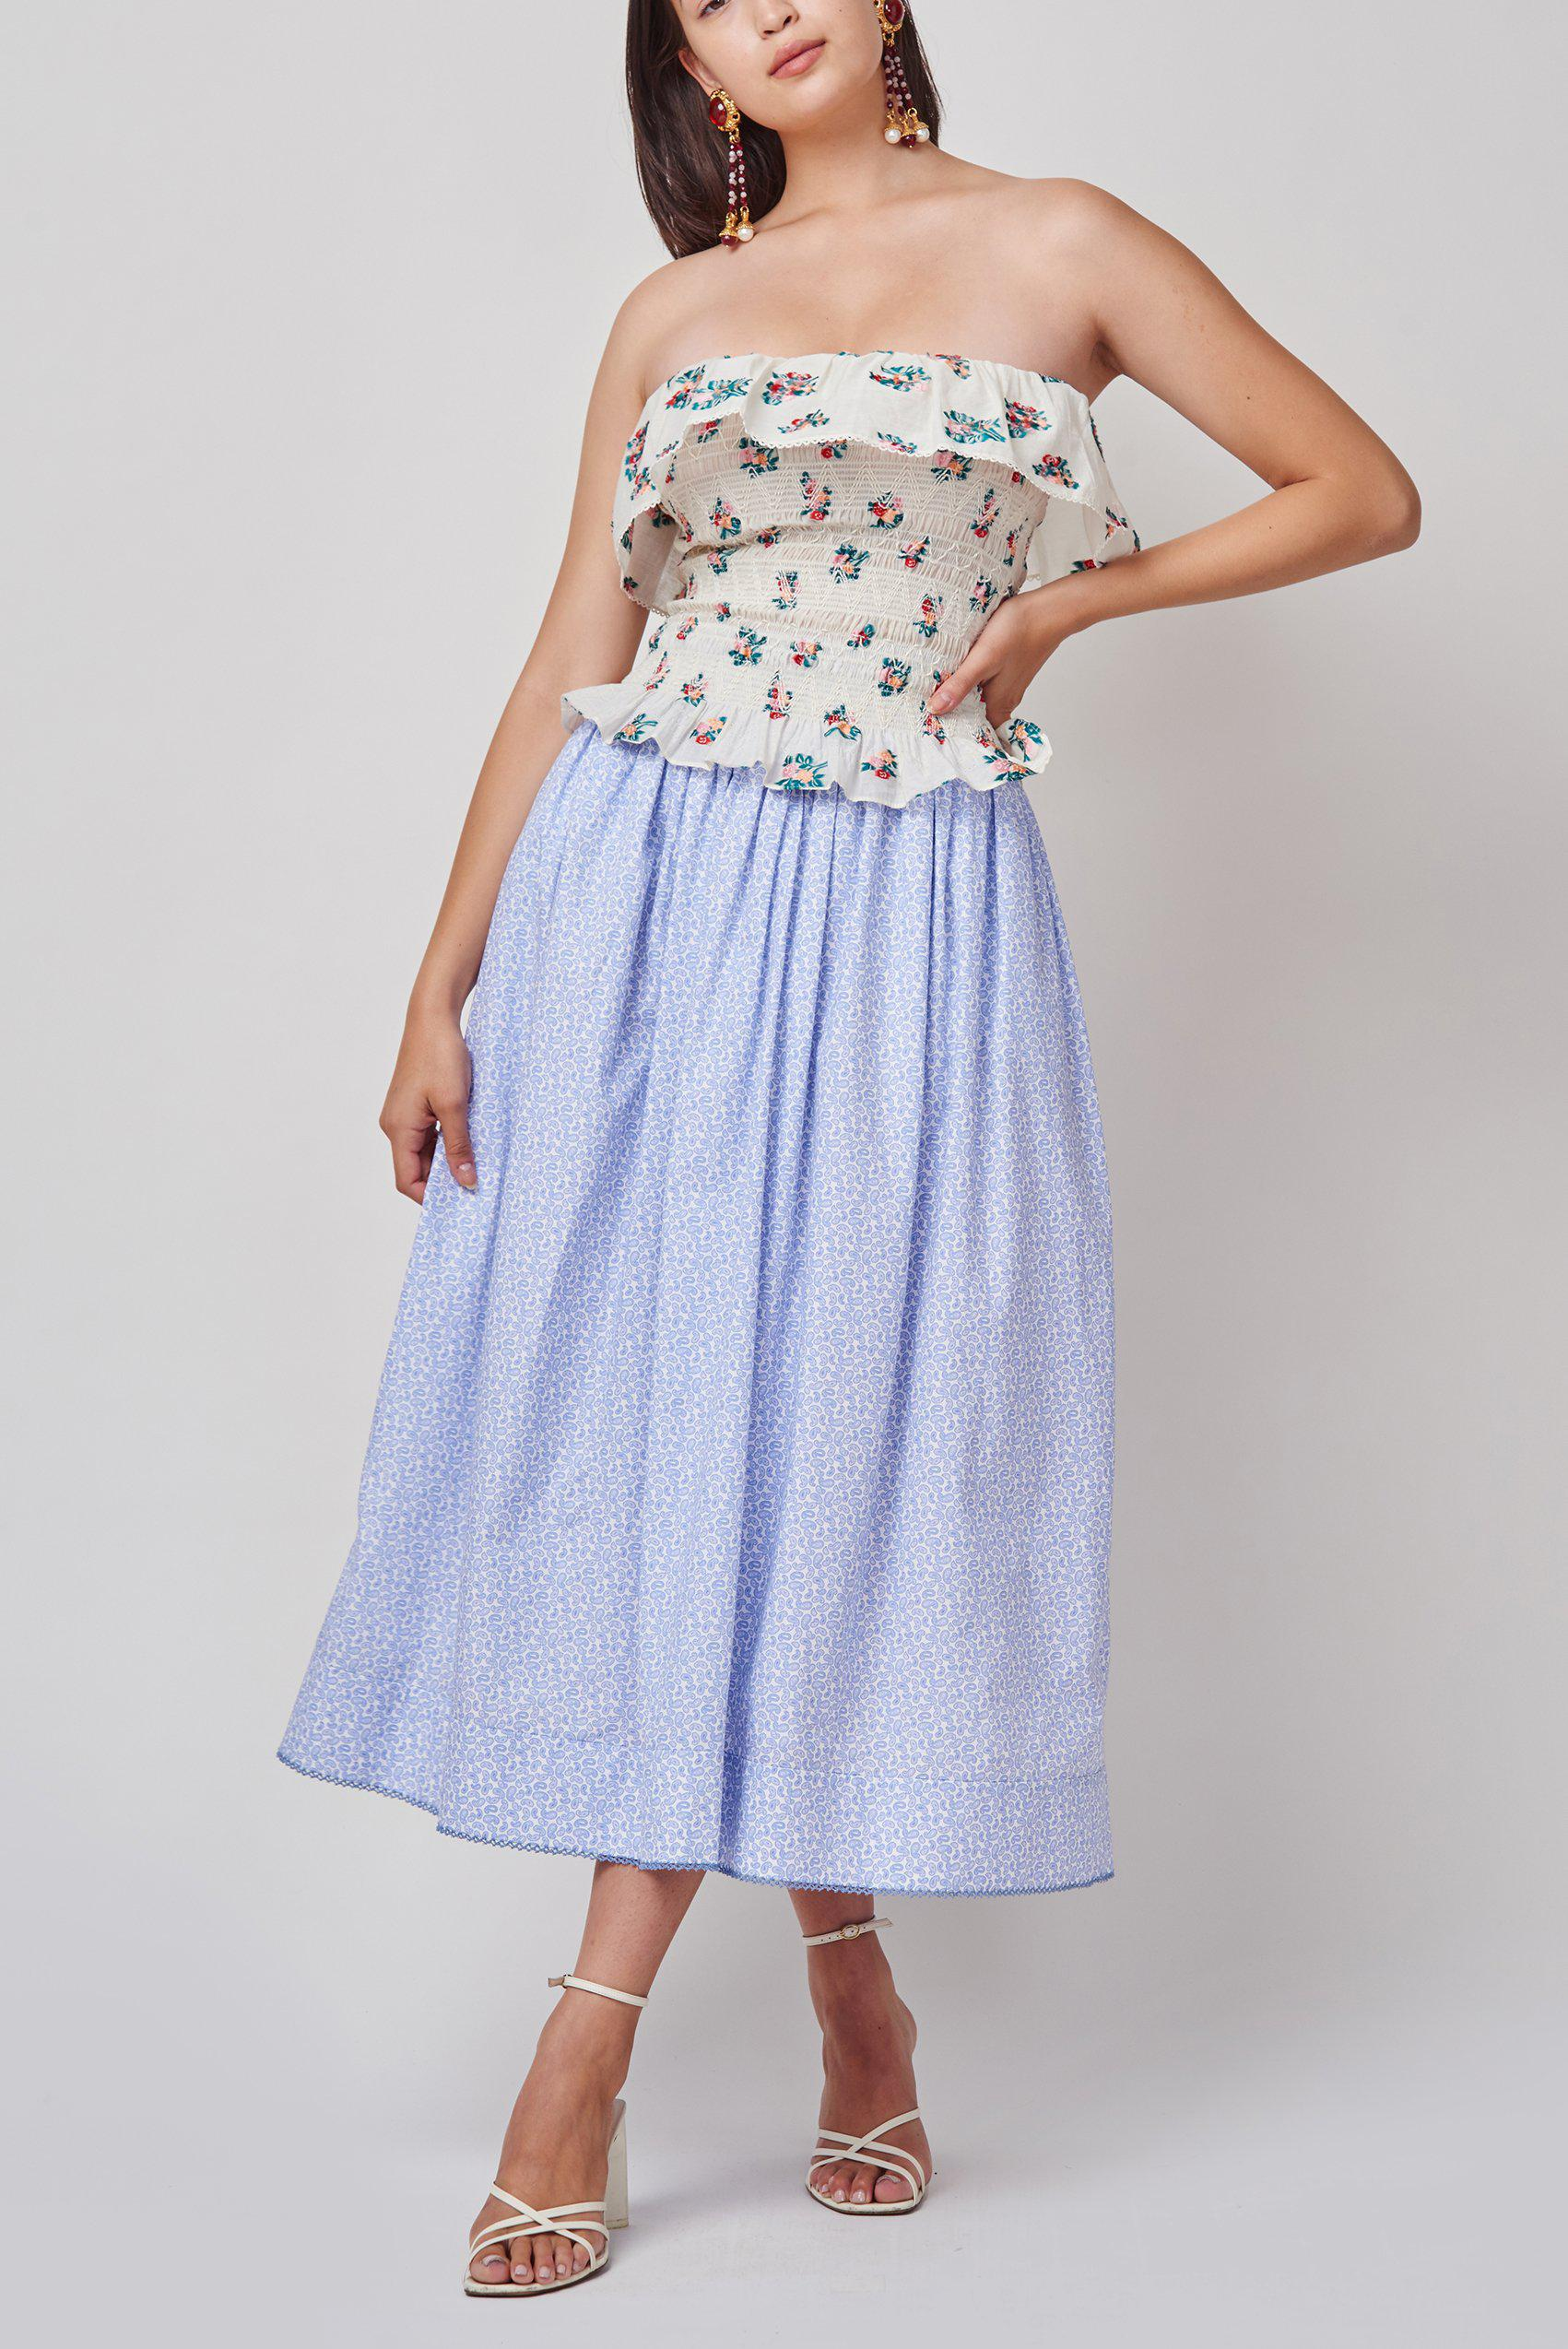 Ash Blue Paisley Skirt with Pointed Waist and Crochet Trim